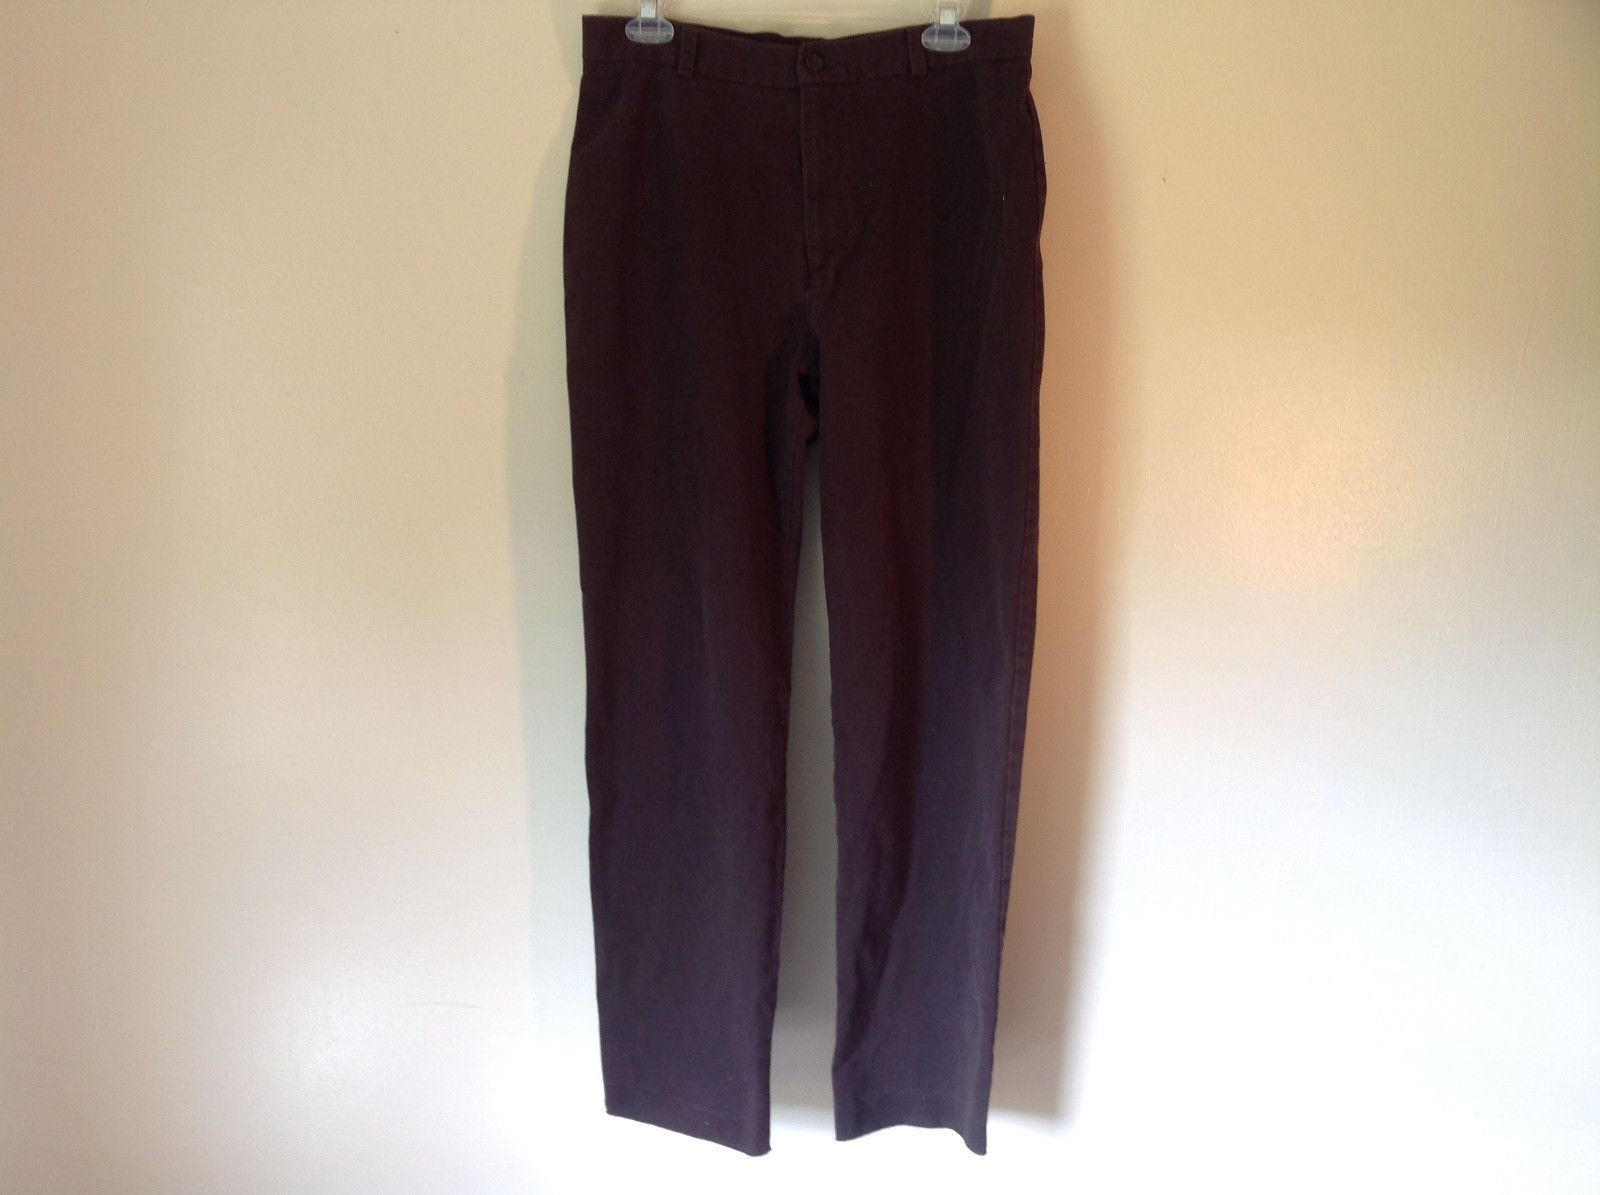 Size 14 Dark Brown Pants by J Crew Slightly Stretchy Button and Zipper Closure